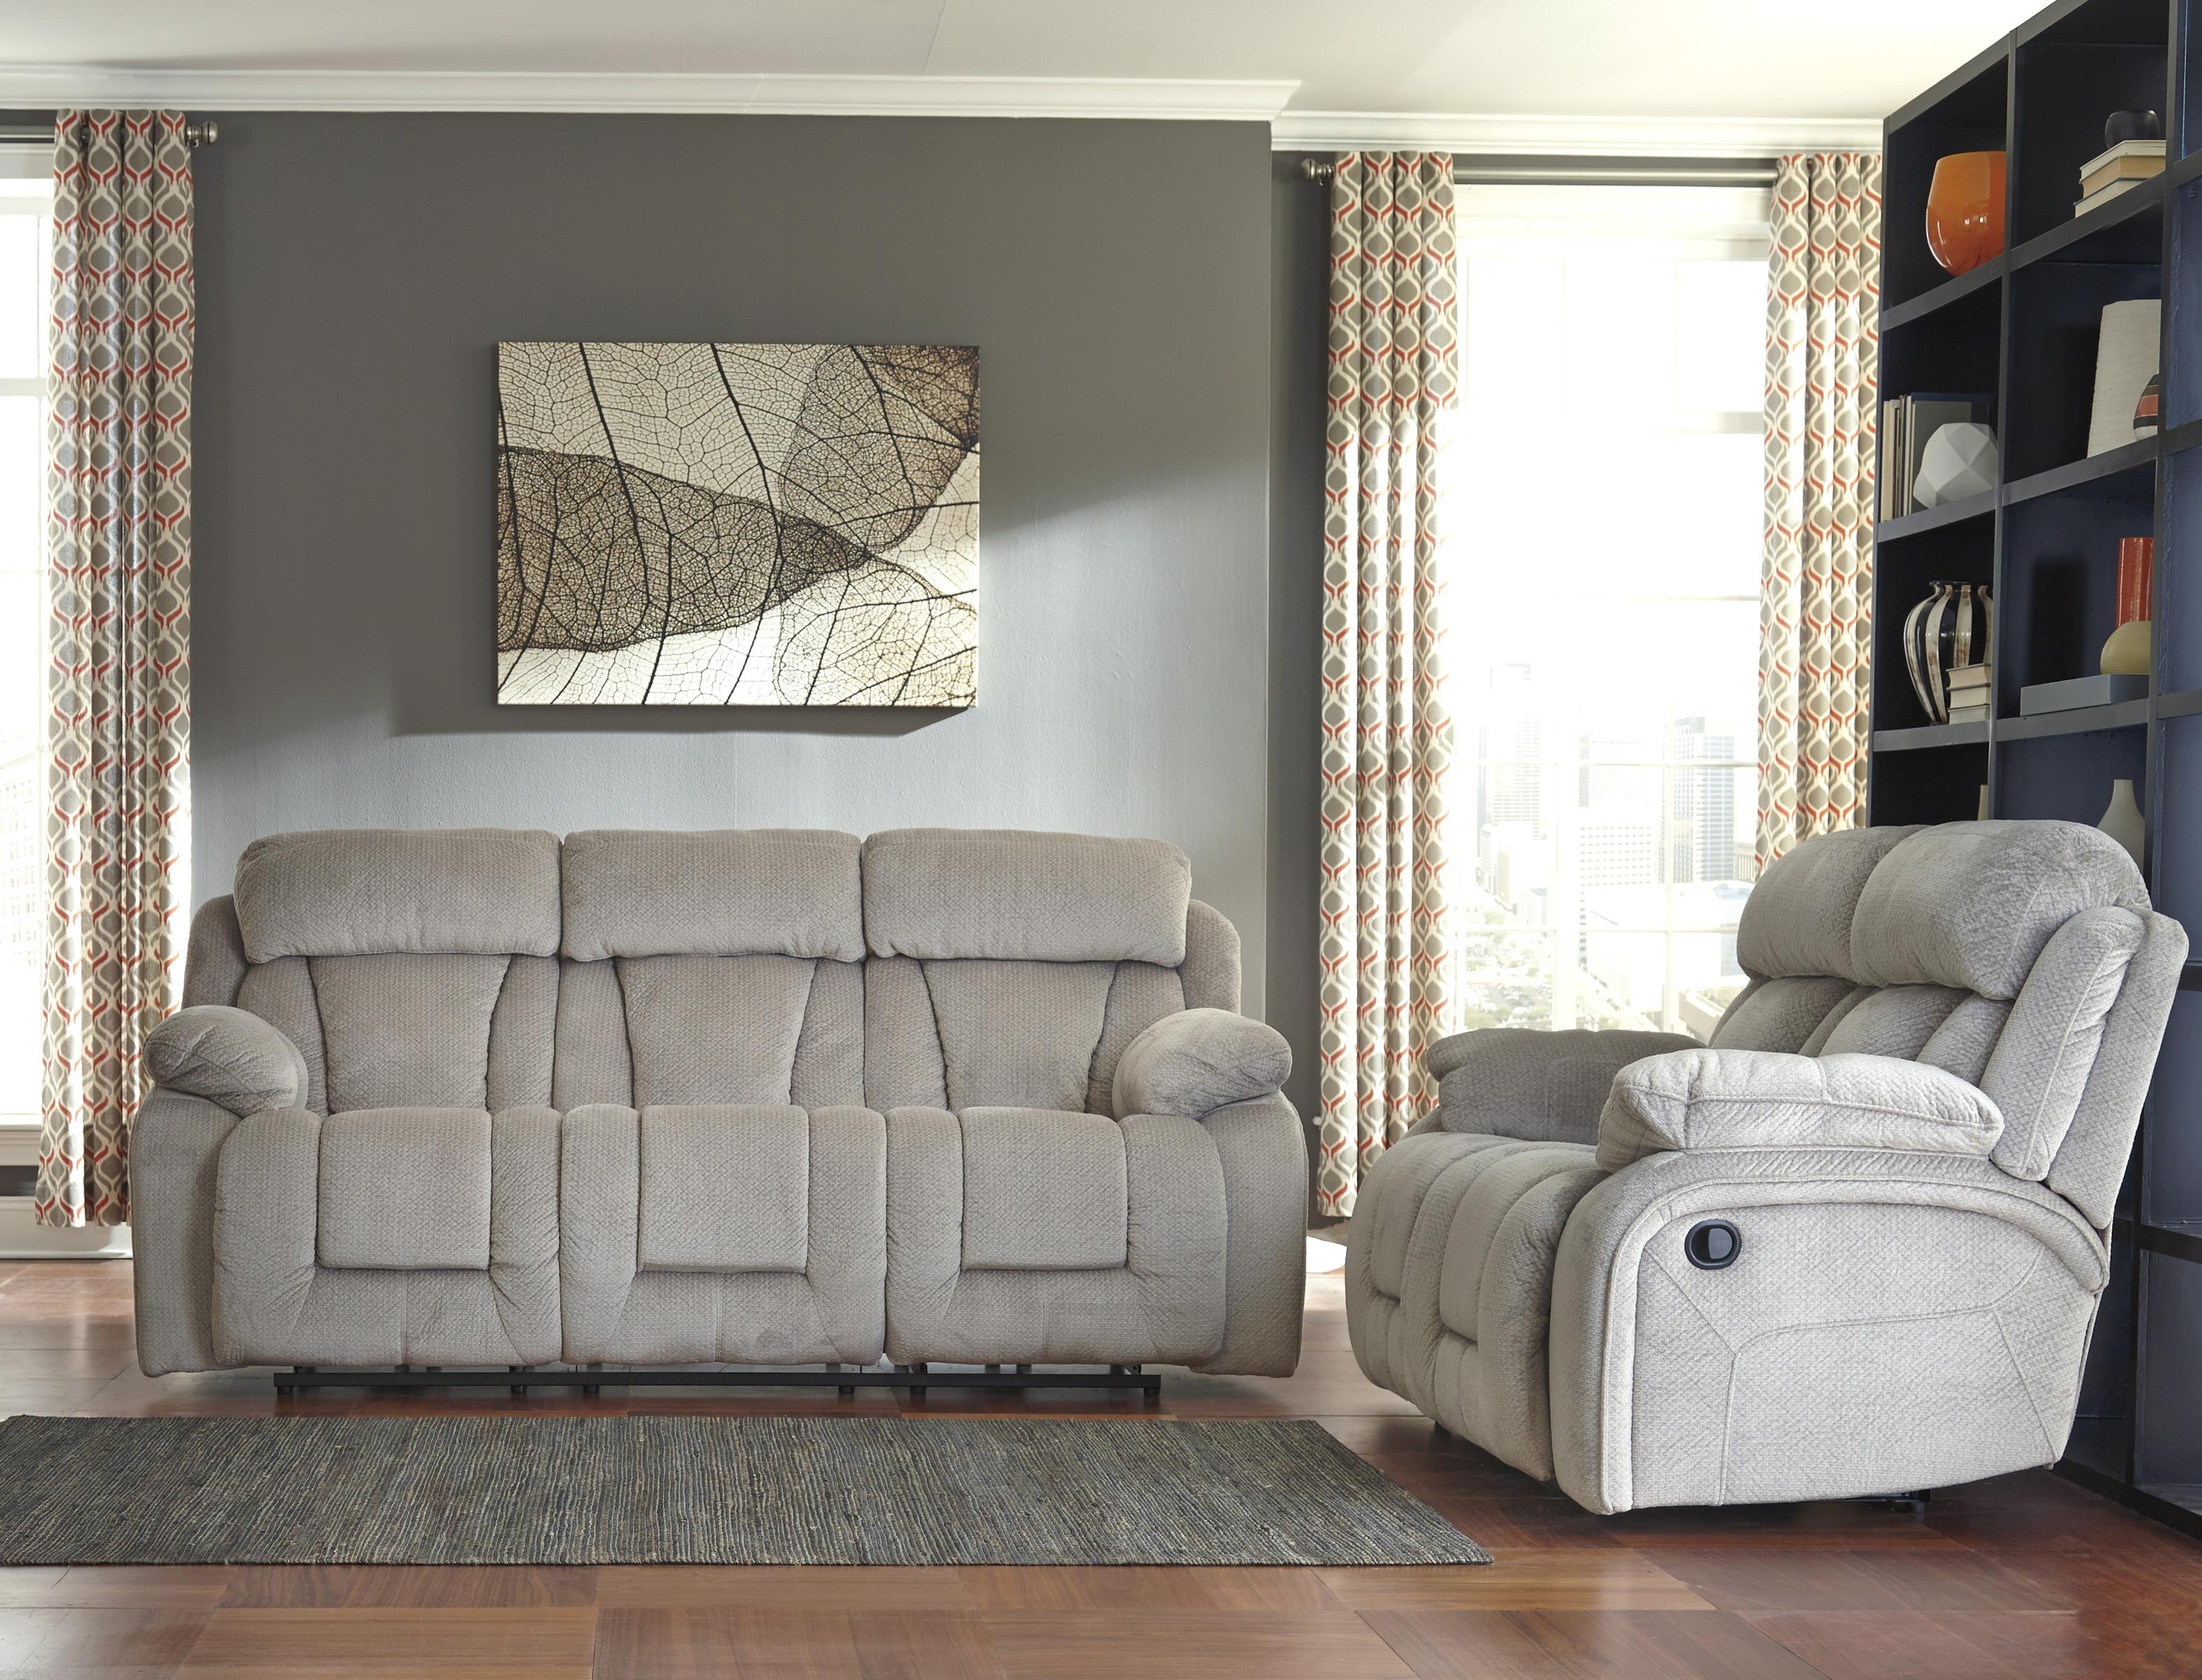 Signature Design by Ashley Stricklin Reclining Living Room Group - Item Number: 86504 Living Room Group 2